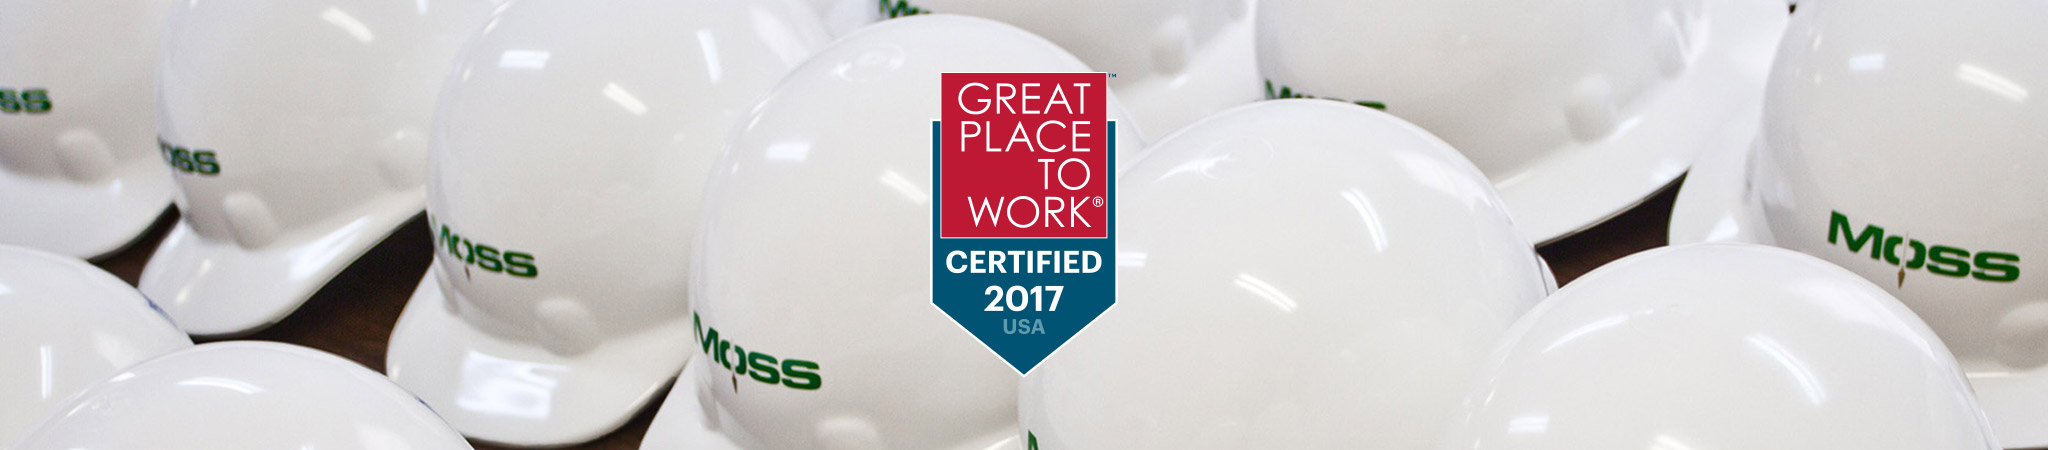 Great Place to Work Certified 2017